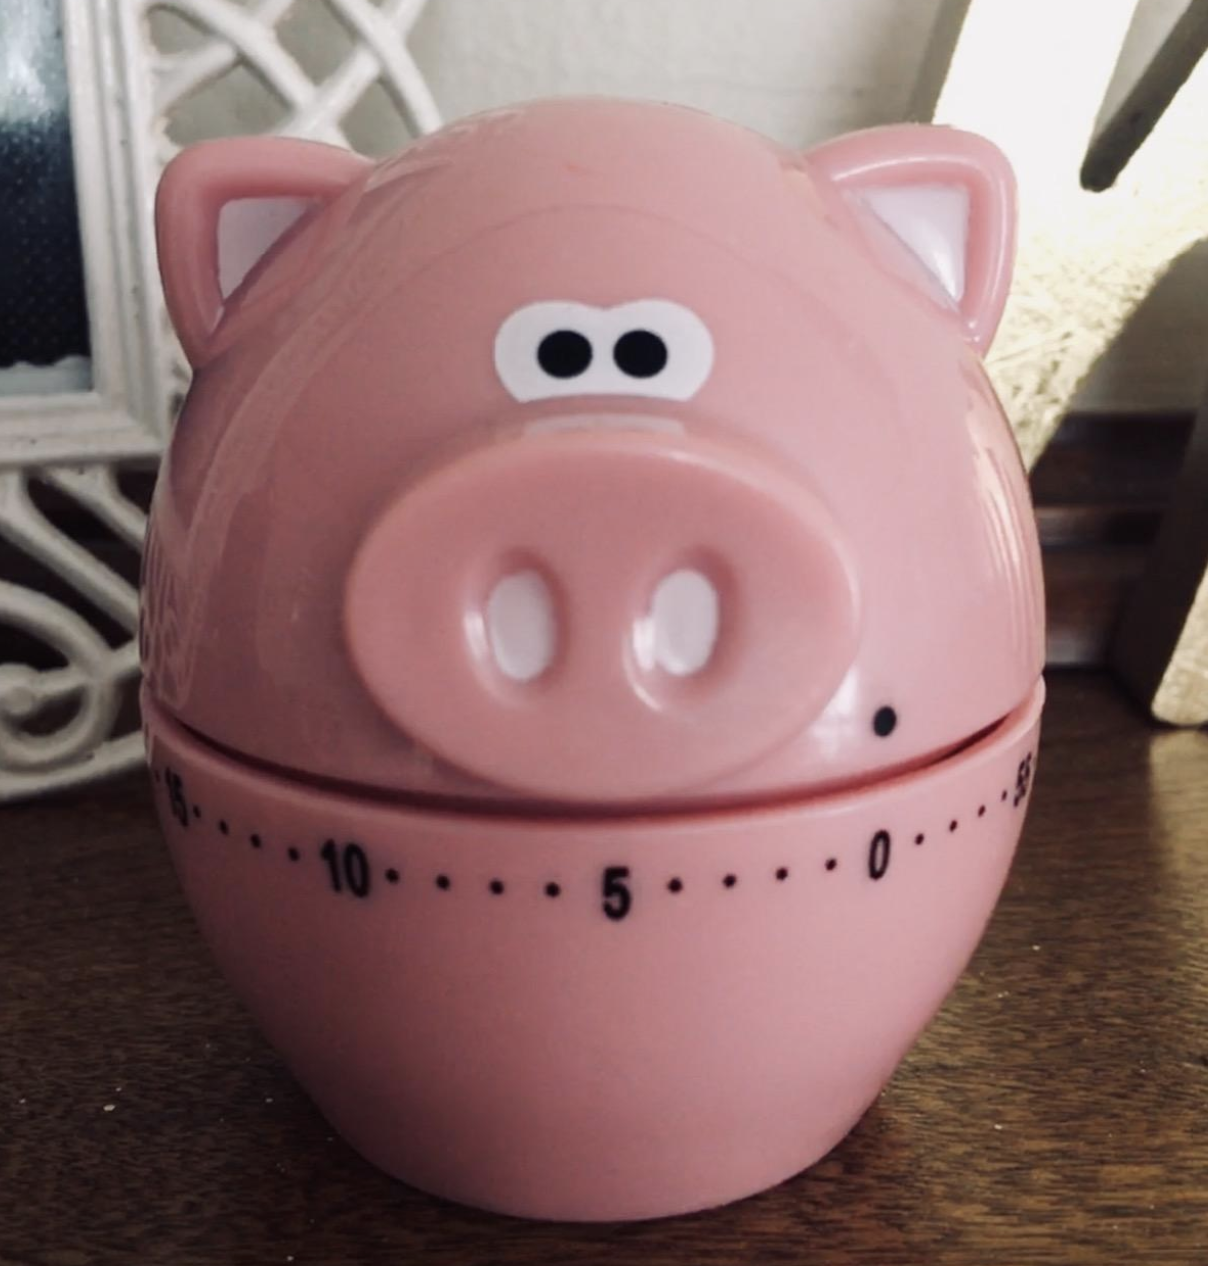 Reviewer photo of the piggy wiggy timer on table